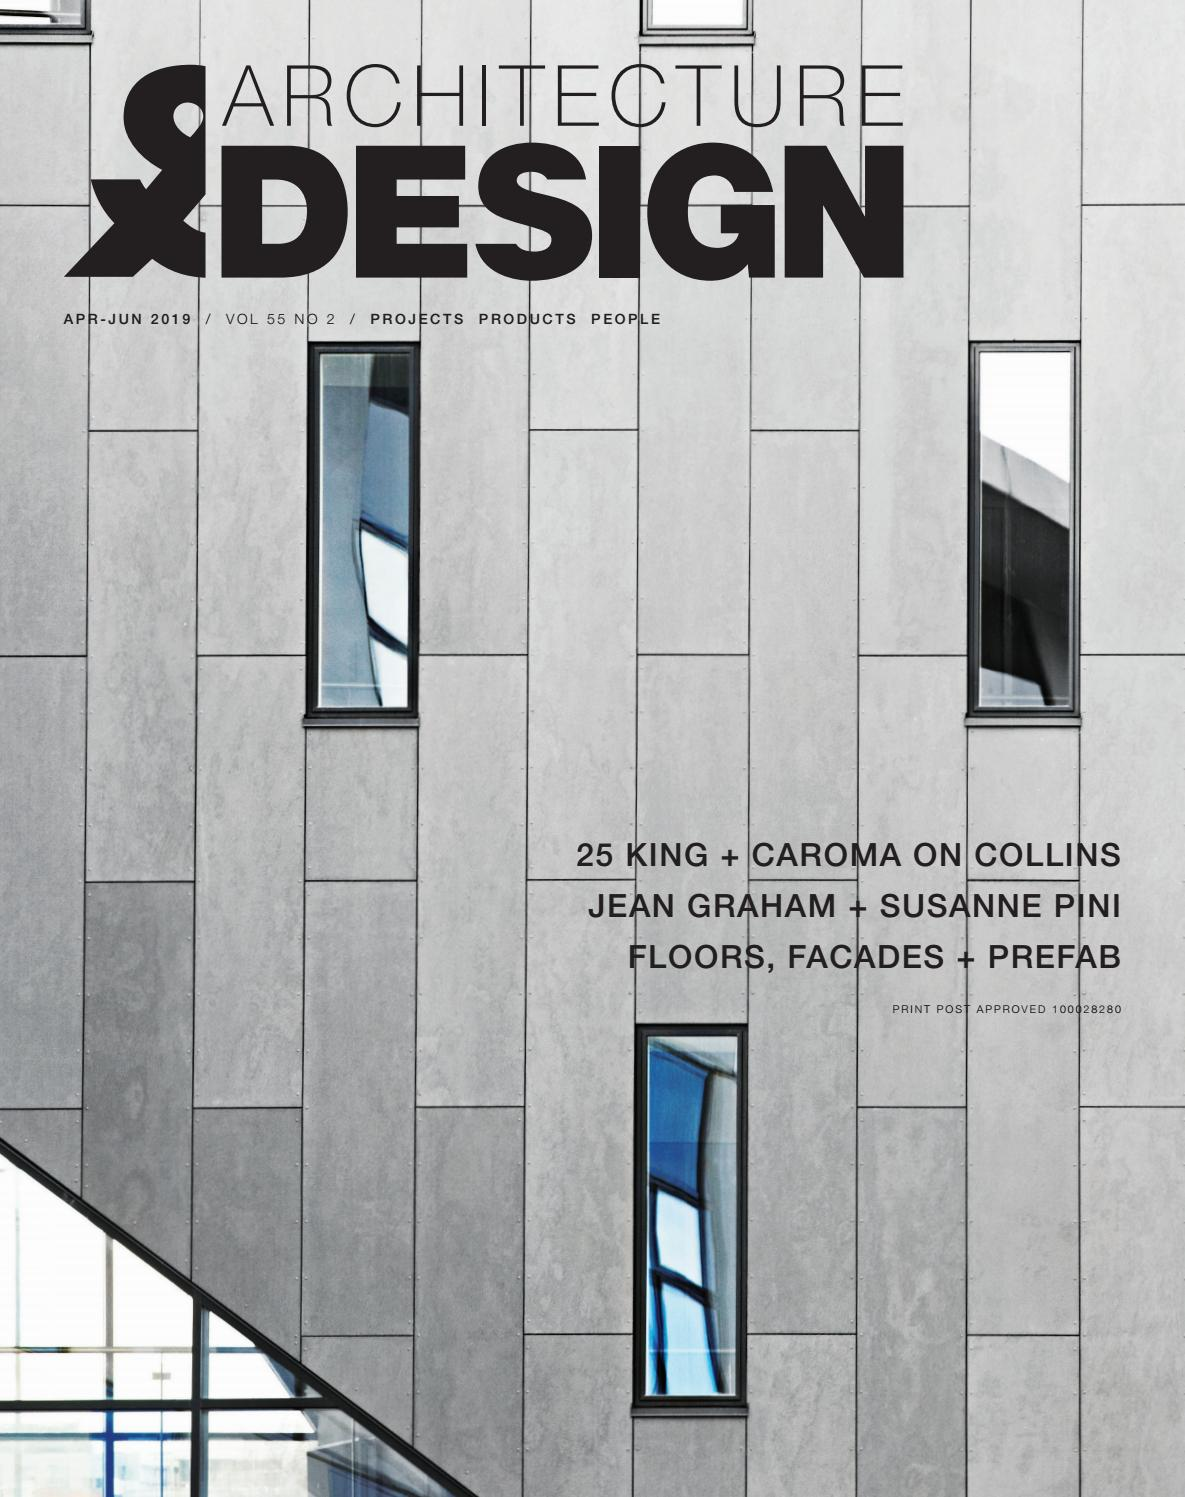 Architecture Design Apr Jun 2019 Vol 55 Issue 2 By Indesign Media Asia Pacific Issuu